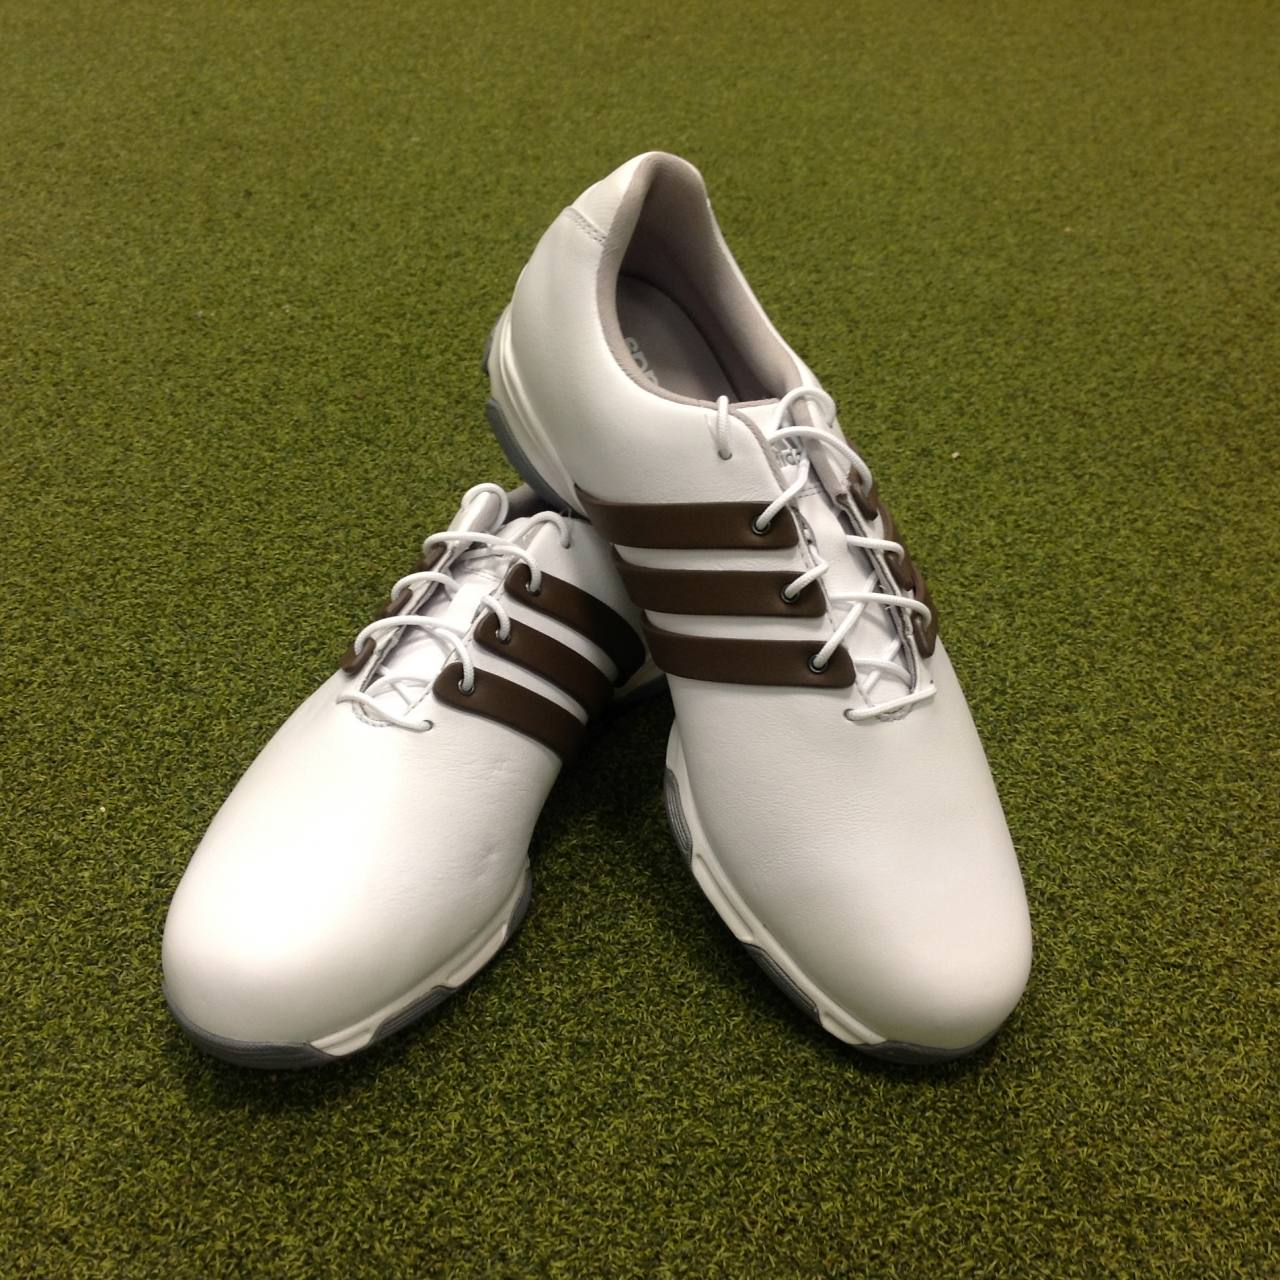 20d72d61fc5b1e NEW Adidas Adipure Traxion Golf Shoes - UK Size 8.5 (Wide) - US 9 ...